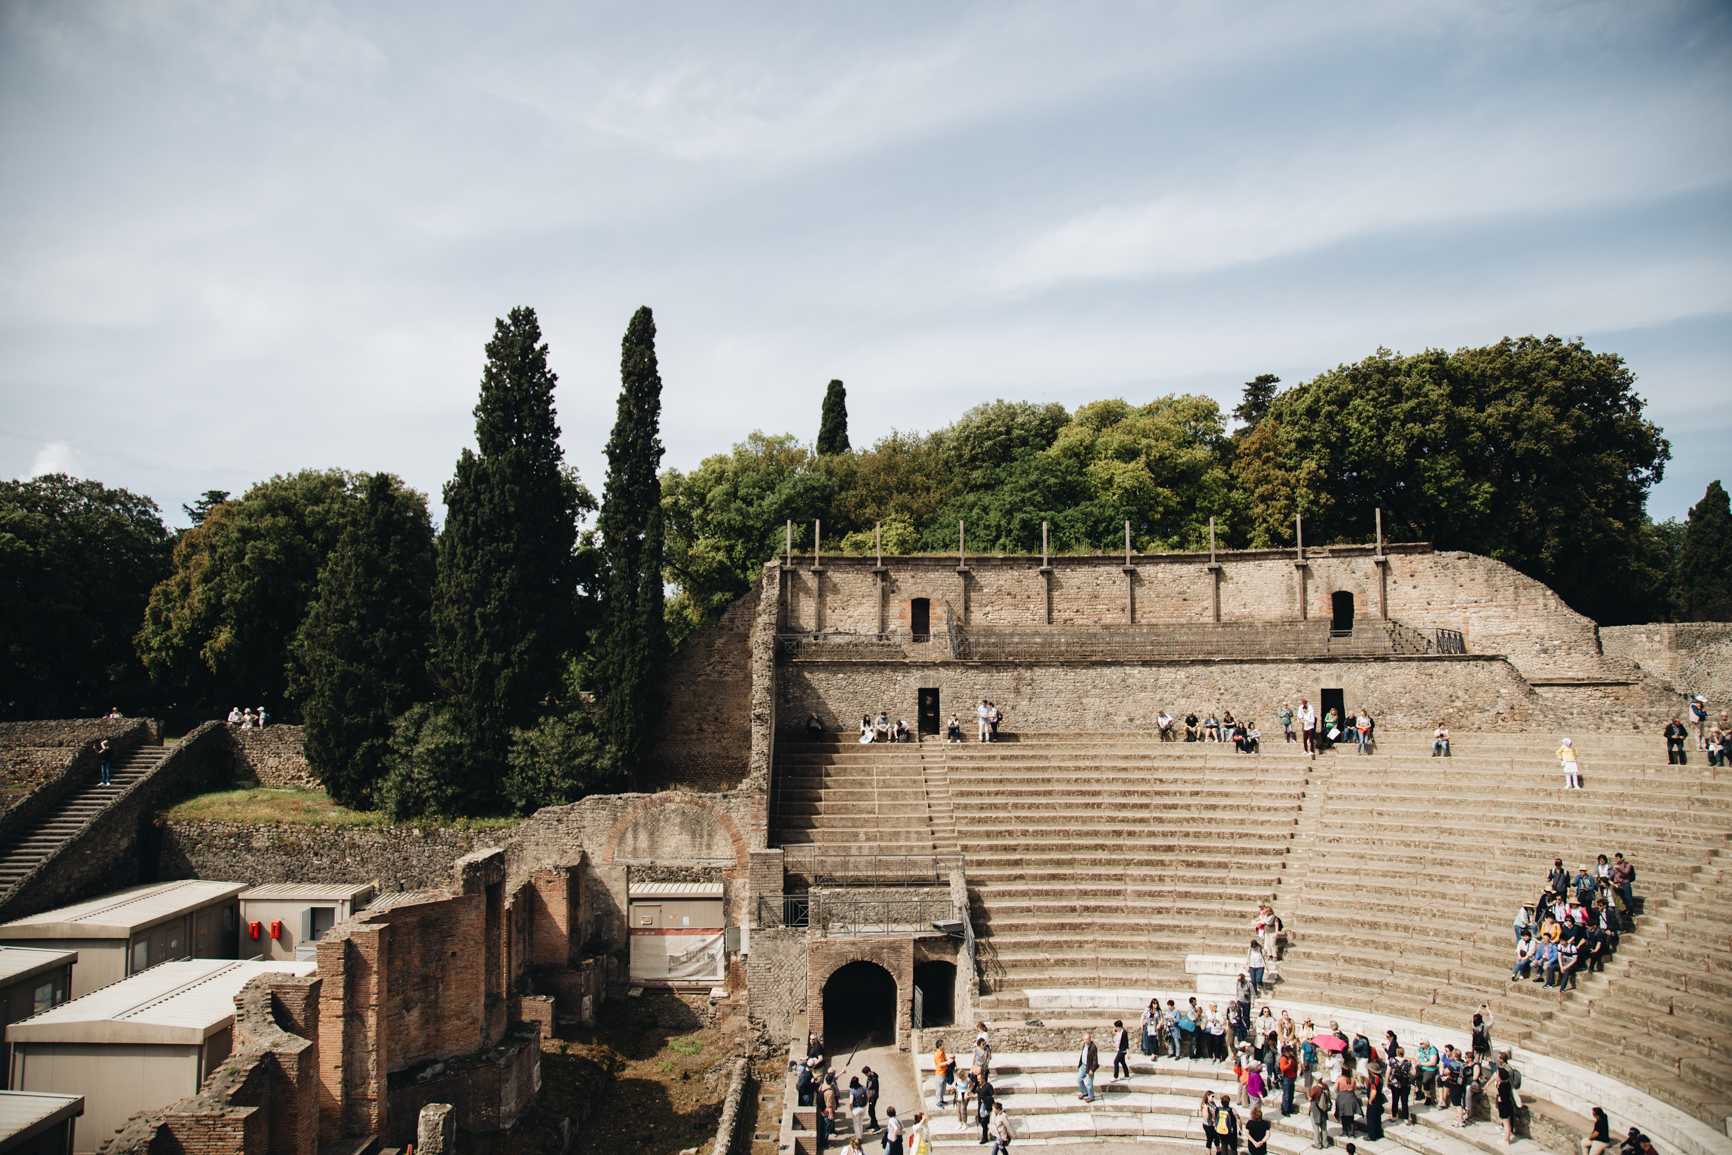 Grand-theatre-pompei-site-ruines-blog-voyage.jpg